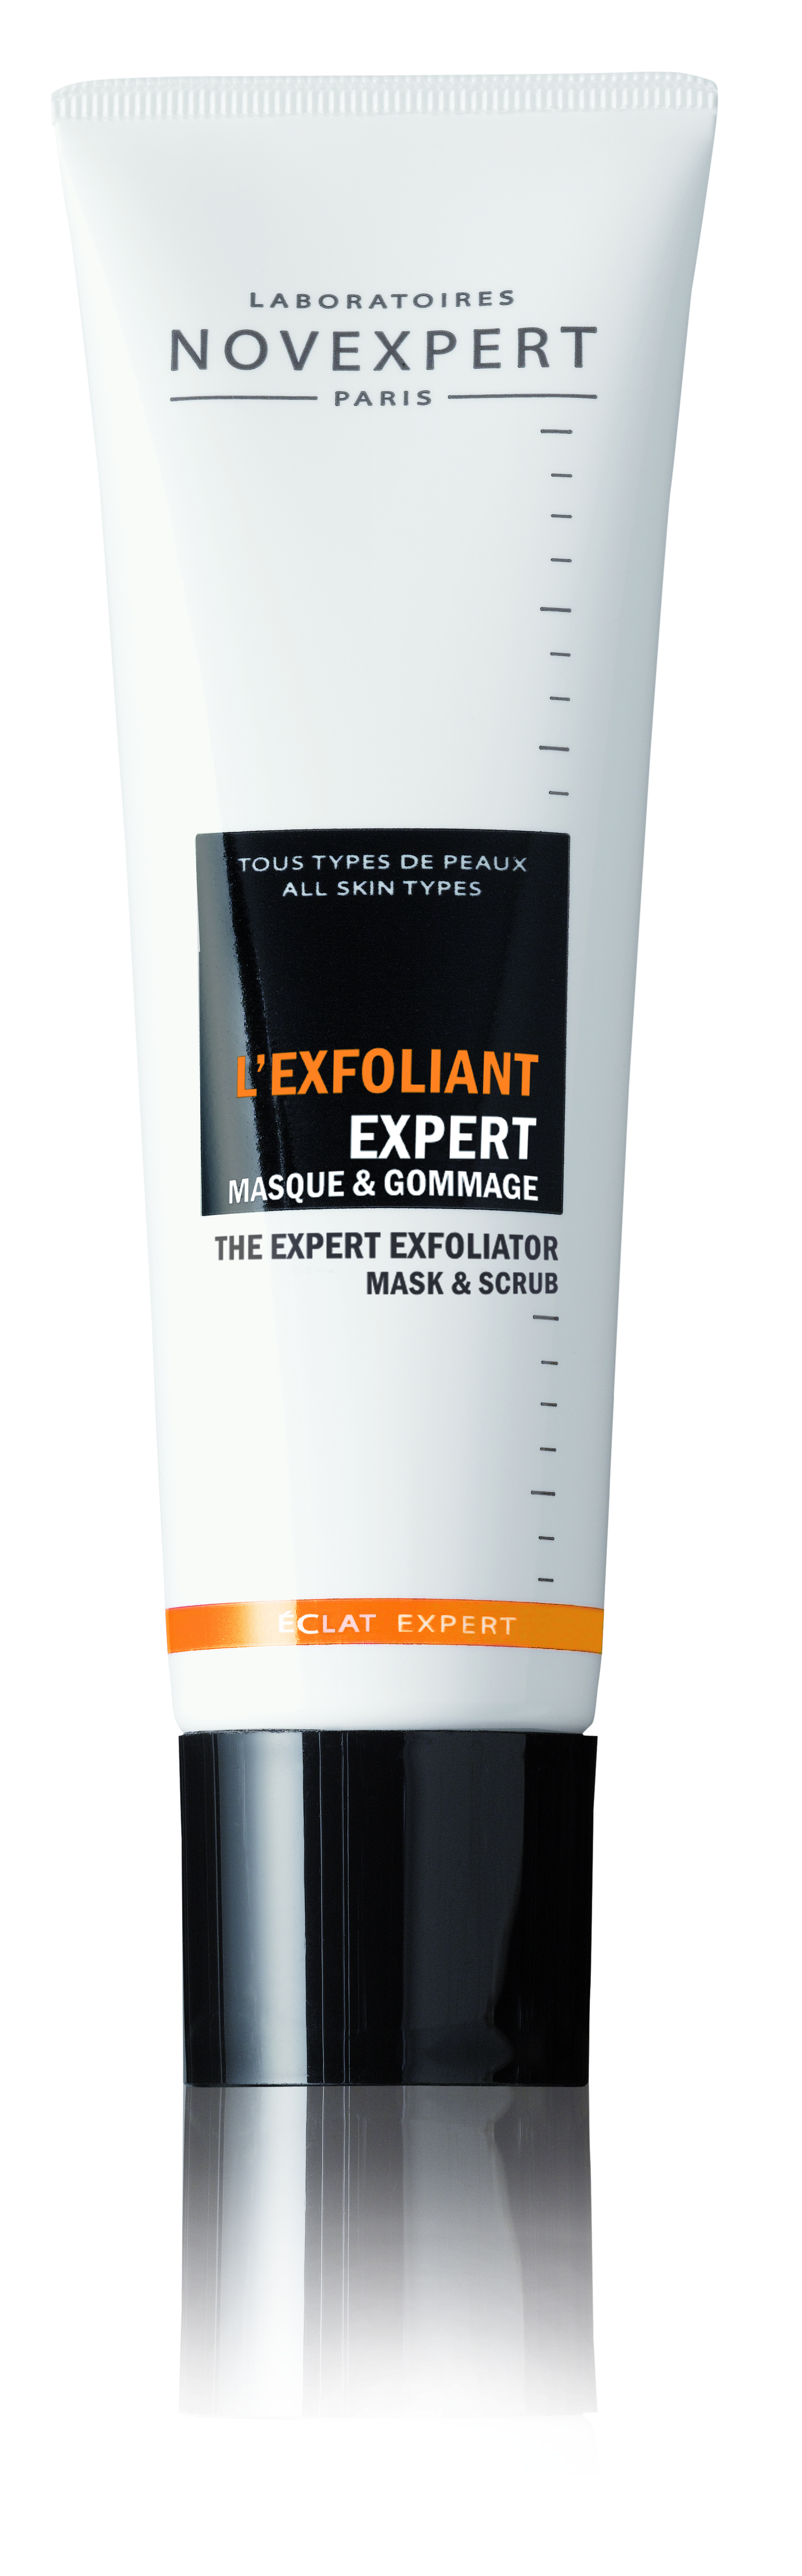 The Expert Exfoliator_HD reflection